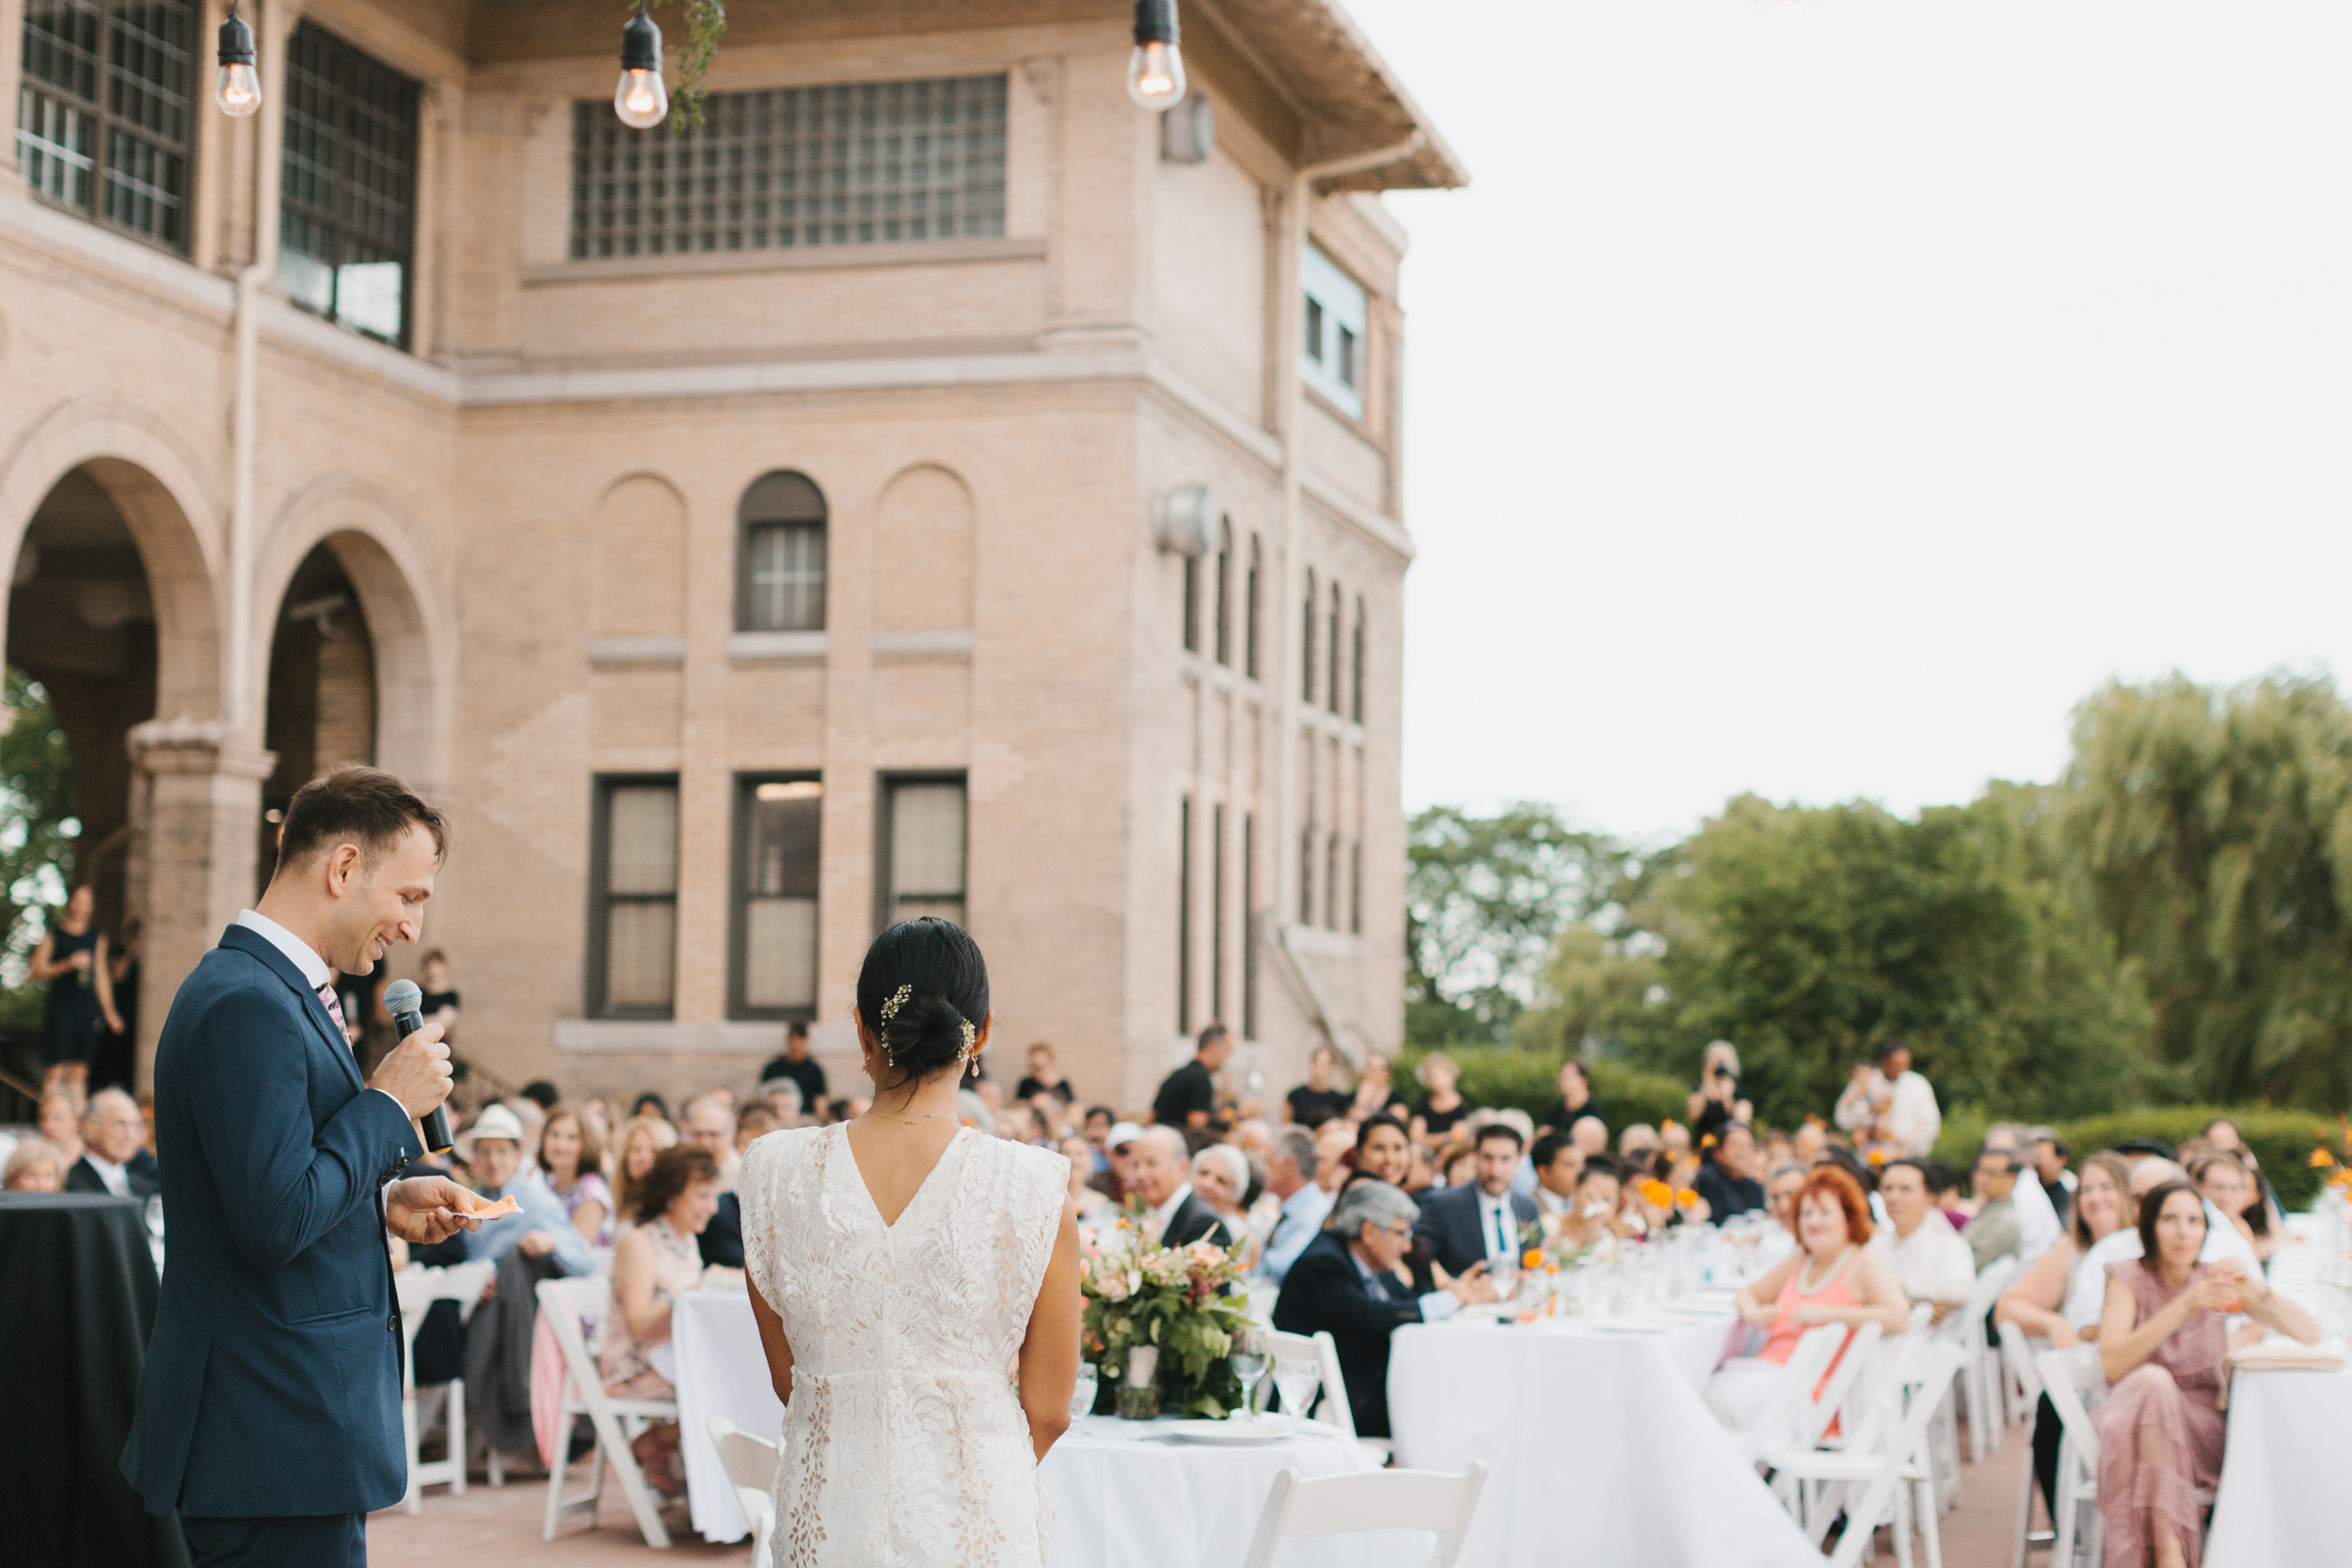 Detroit Lifestyle Wedding Photographer Mae Stier-038.jpg